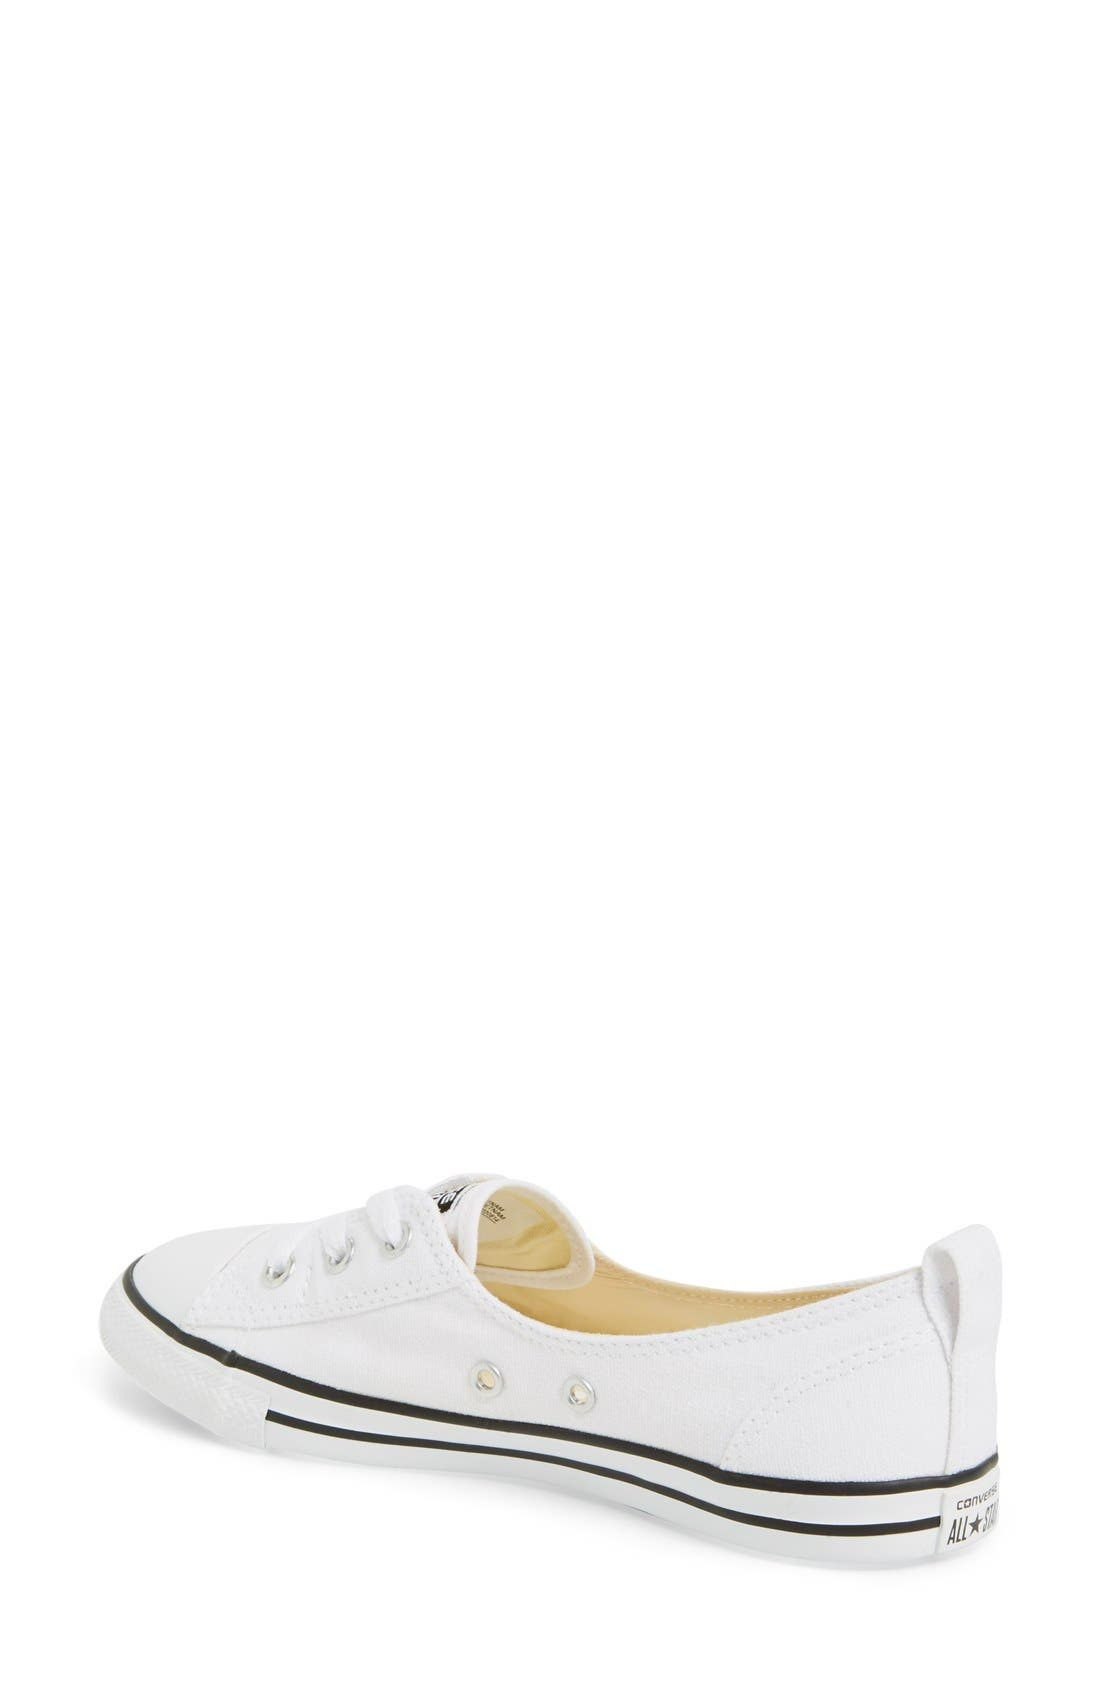 ,                             Chuck Taylor<sup>®</sup> All Star<sup>®</sup> Ballet Canvas Sneaker,                             Alternate thumbnail 19, color,                             100